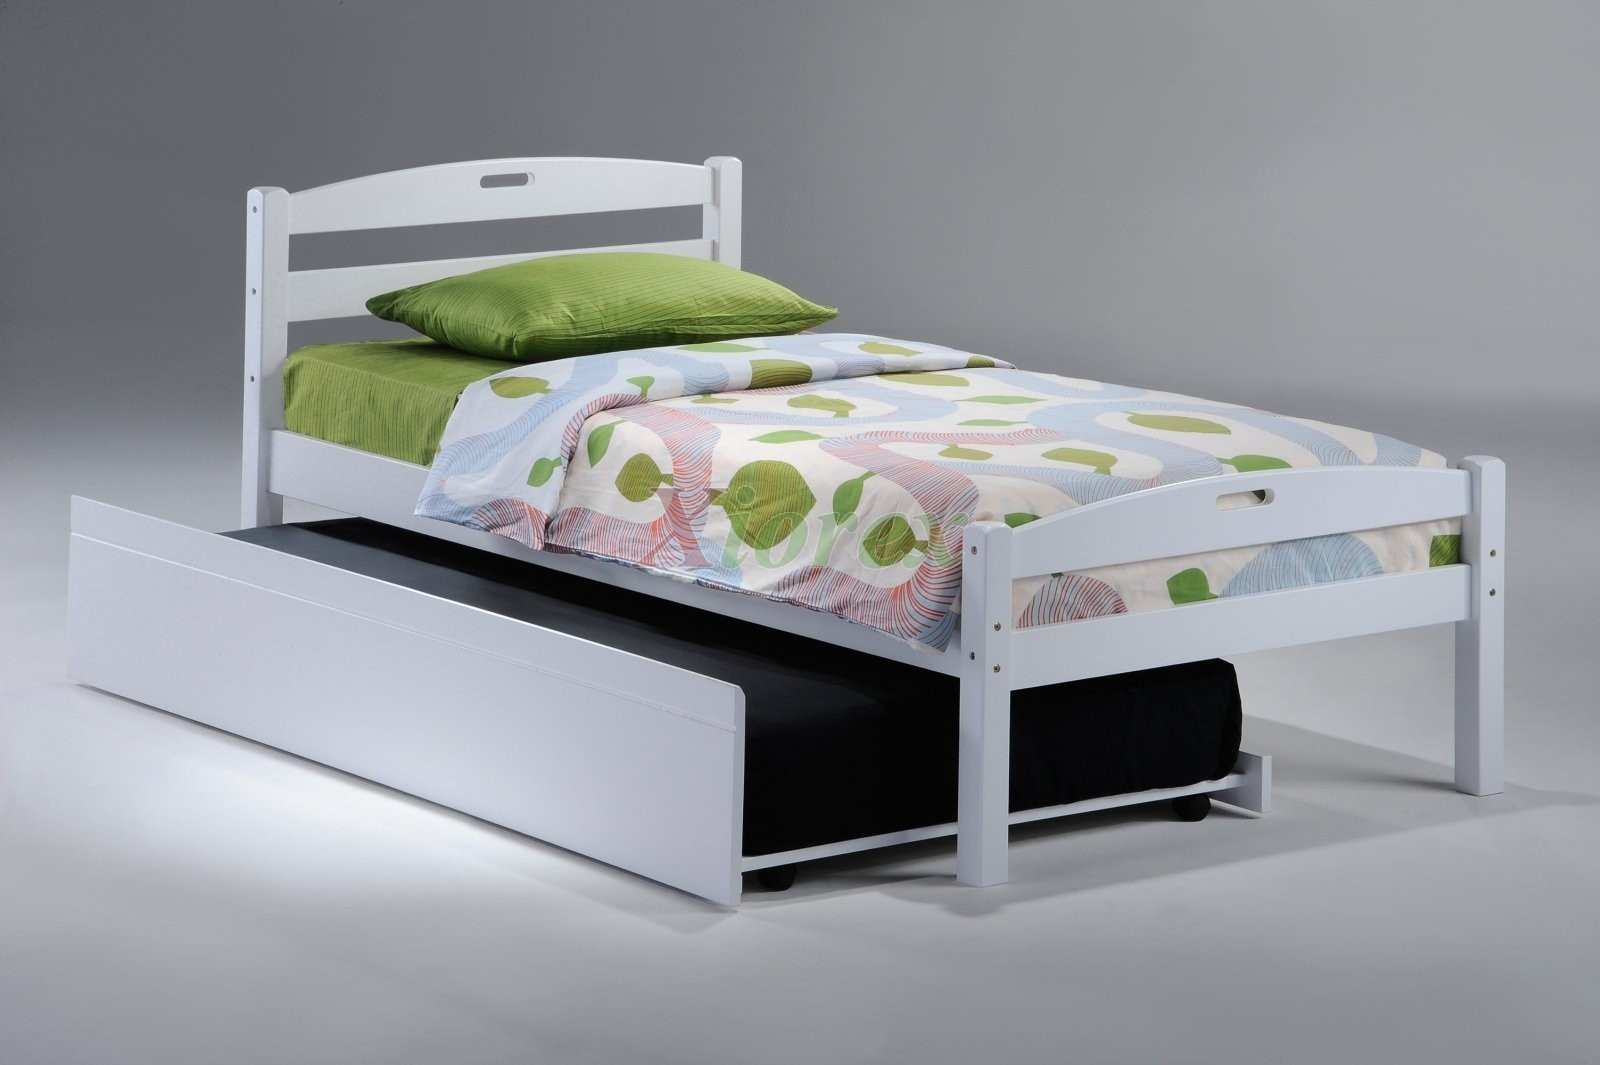 Zest Sesame Bed Sets For Children Night Day